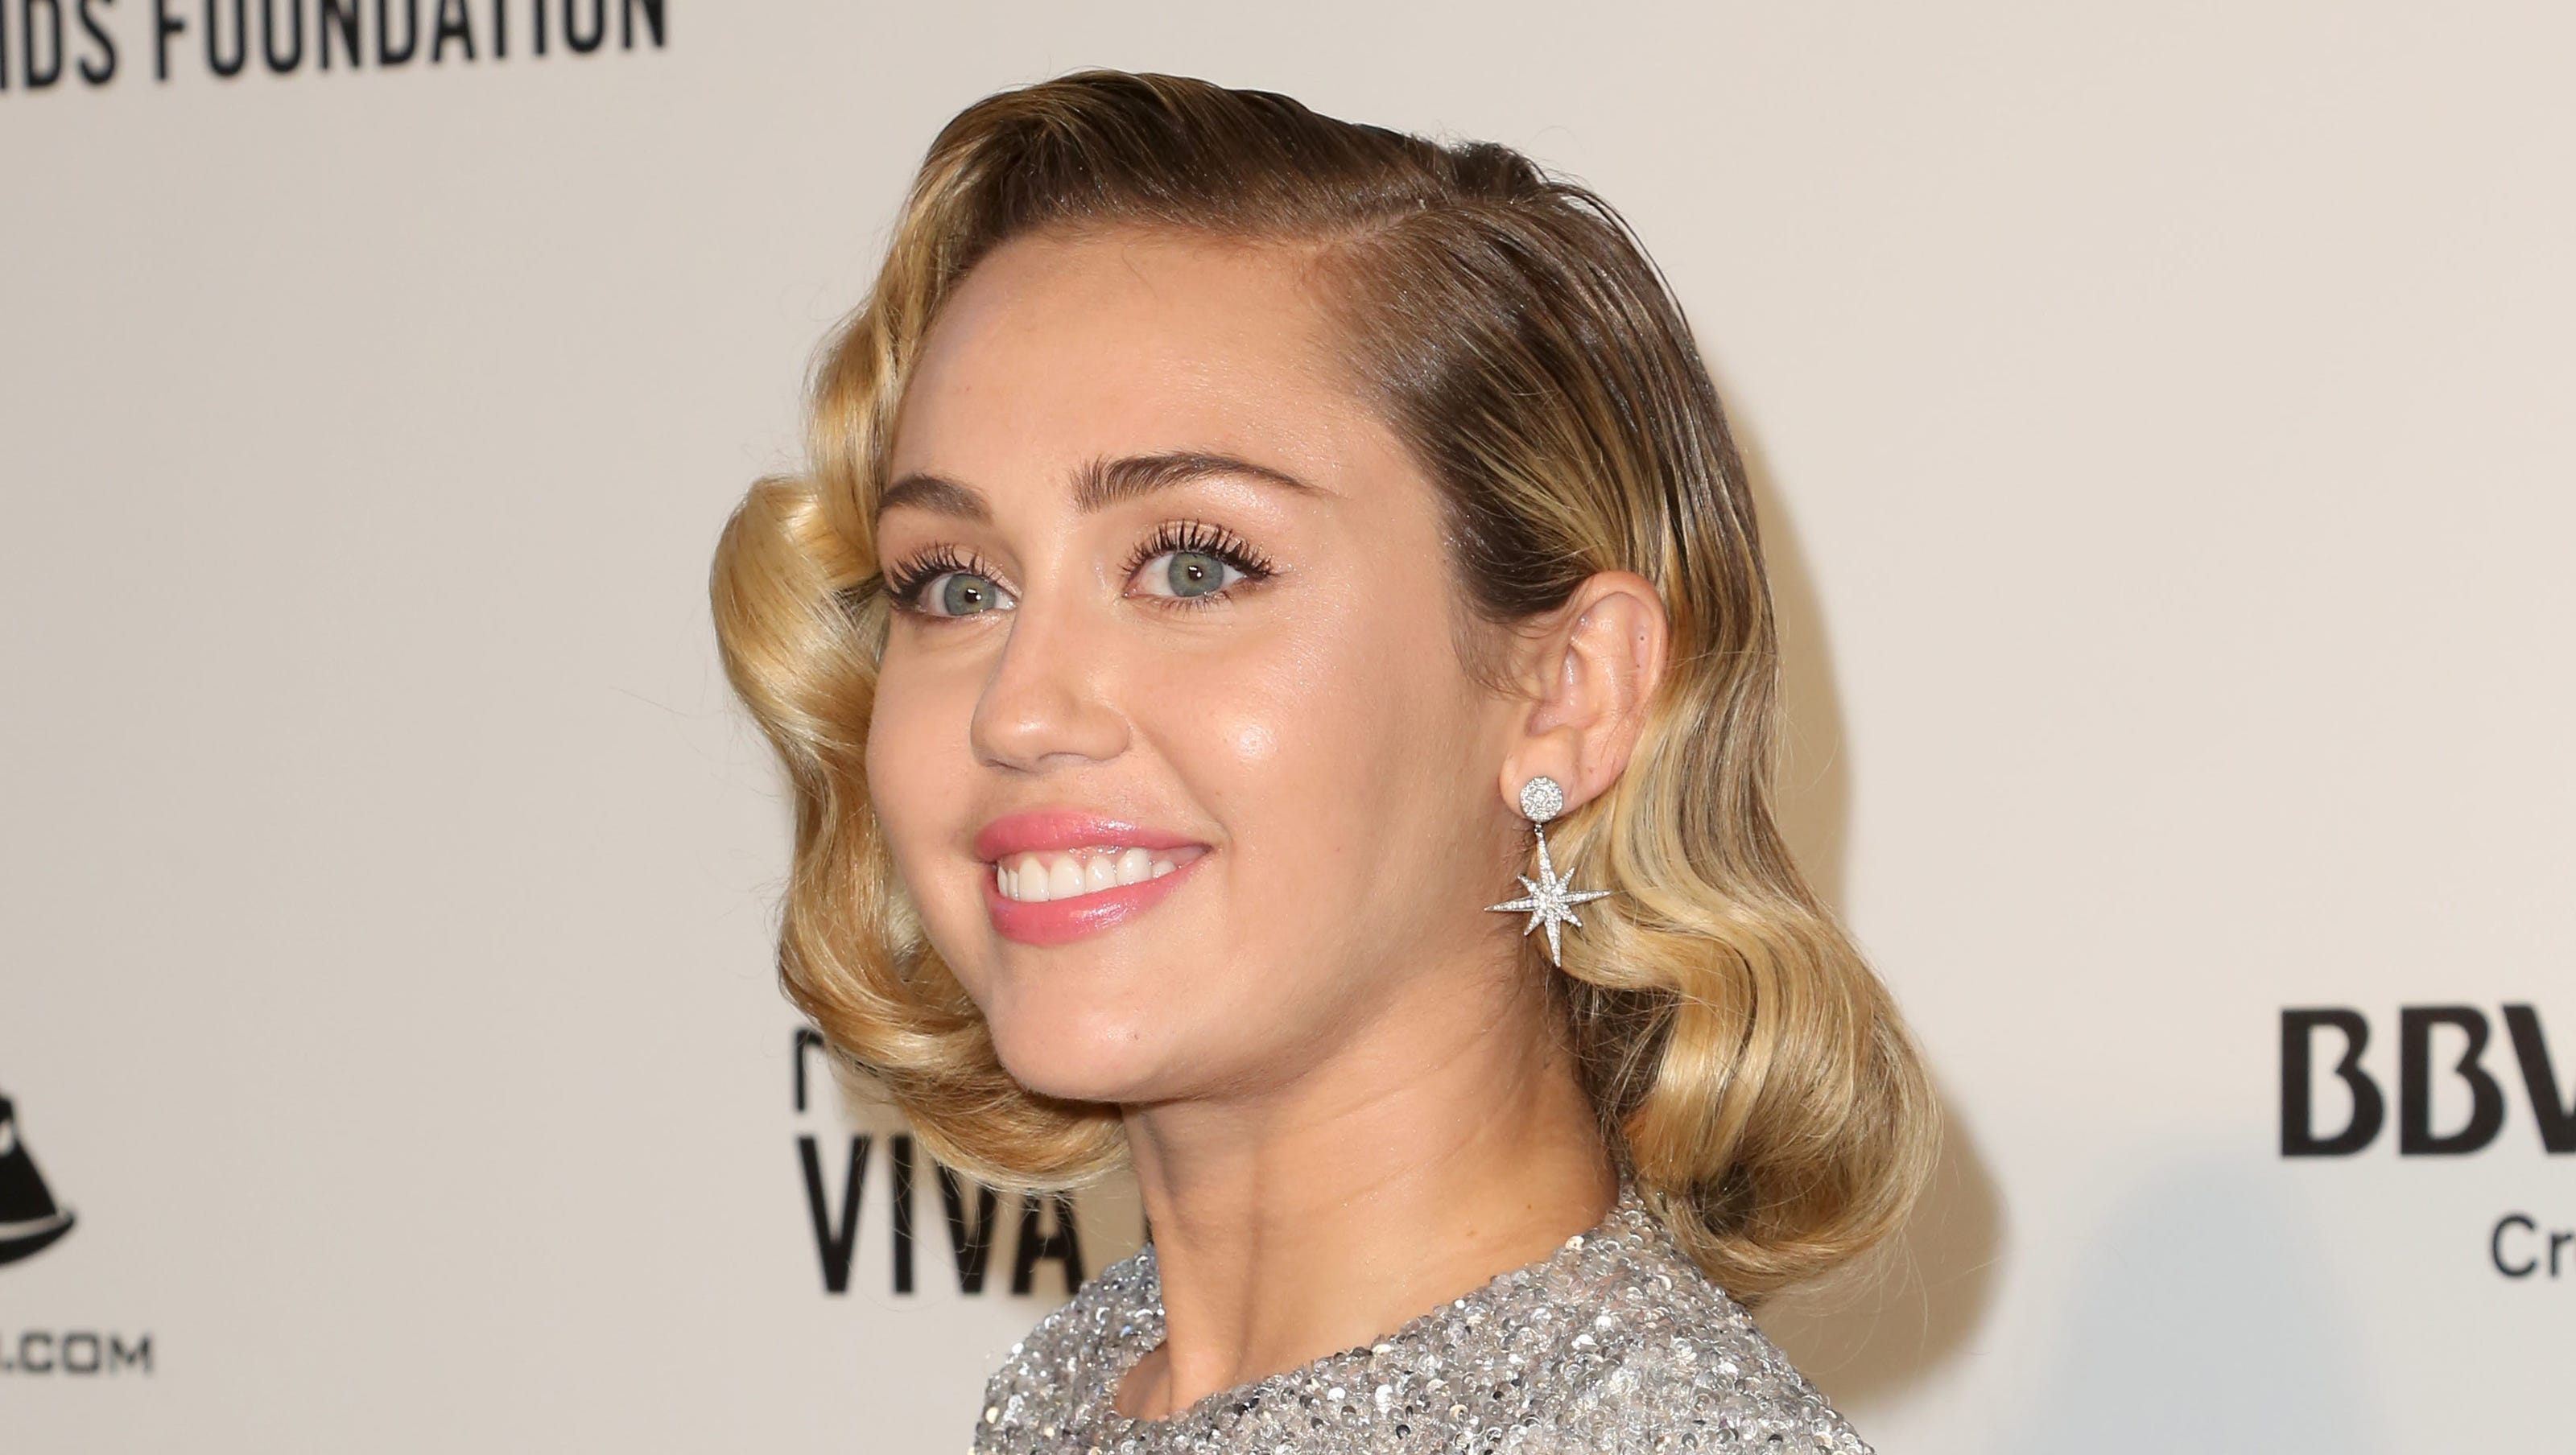 Miley Cyrus: Miley Cyrus Sued For $300M Over 'We Can't Stop